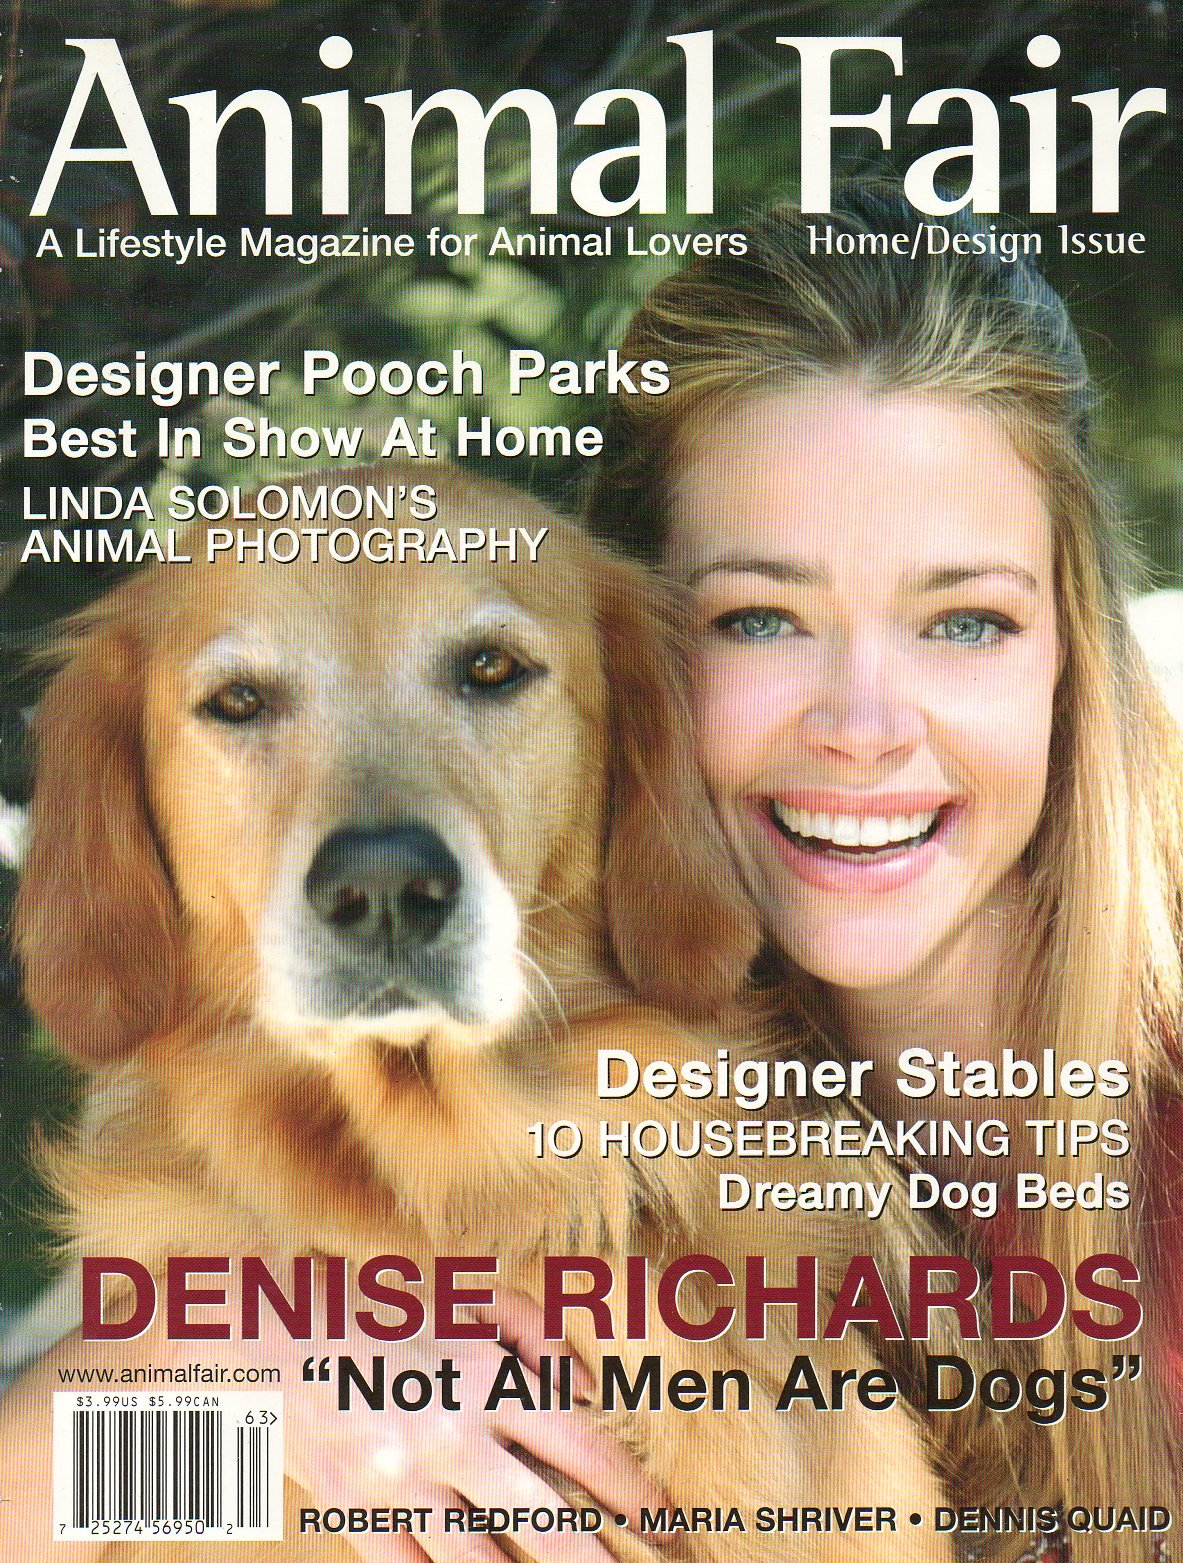 Animal Fair Magazine Home/Design Issue DENISE RICHARDS Linda Solomon's Animal Photography Illustrated DESIGNER POOCH PARKS Steve Irwin Tribute ROBERT REDFORD Maria Shriver DENNIS QUAID Text fb2 ebook